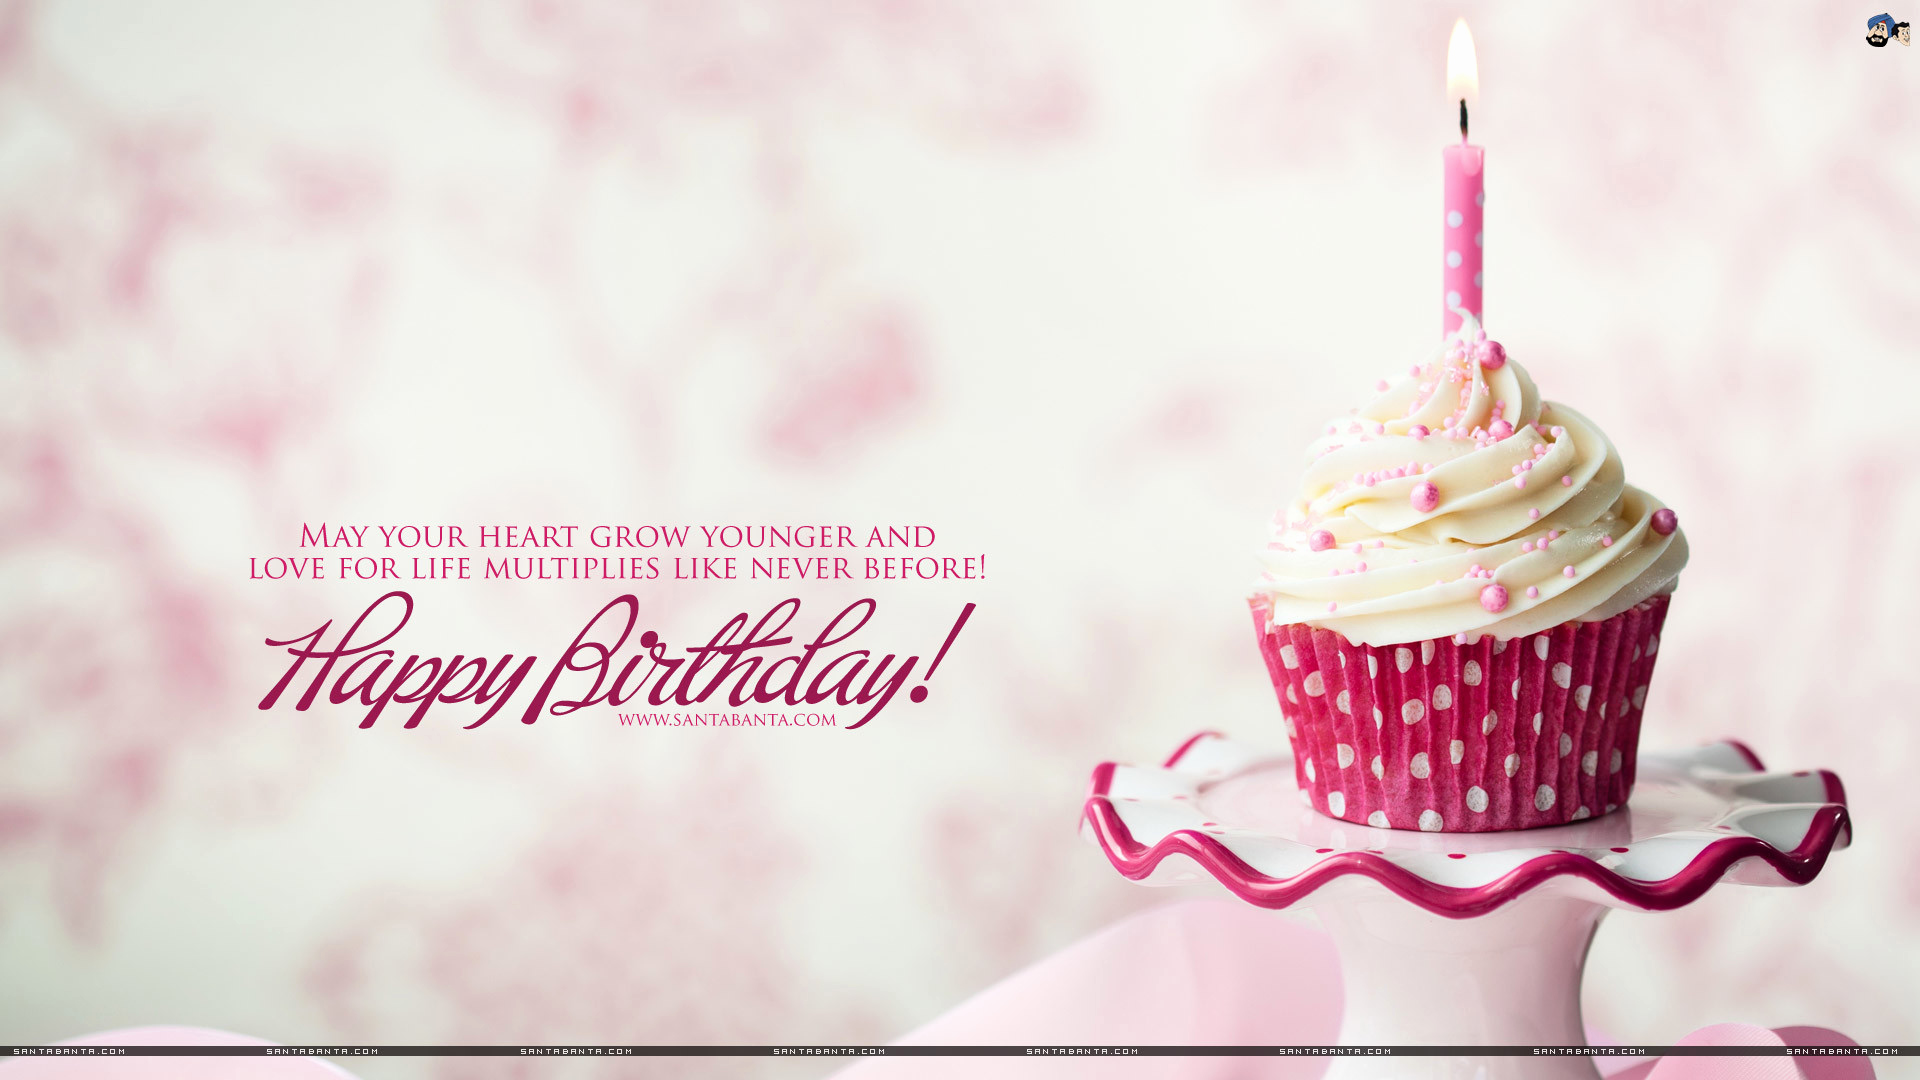 Happy Bday Wallpapers Free Fresh Happy Birthday Love Wallpaper 53 Images